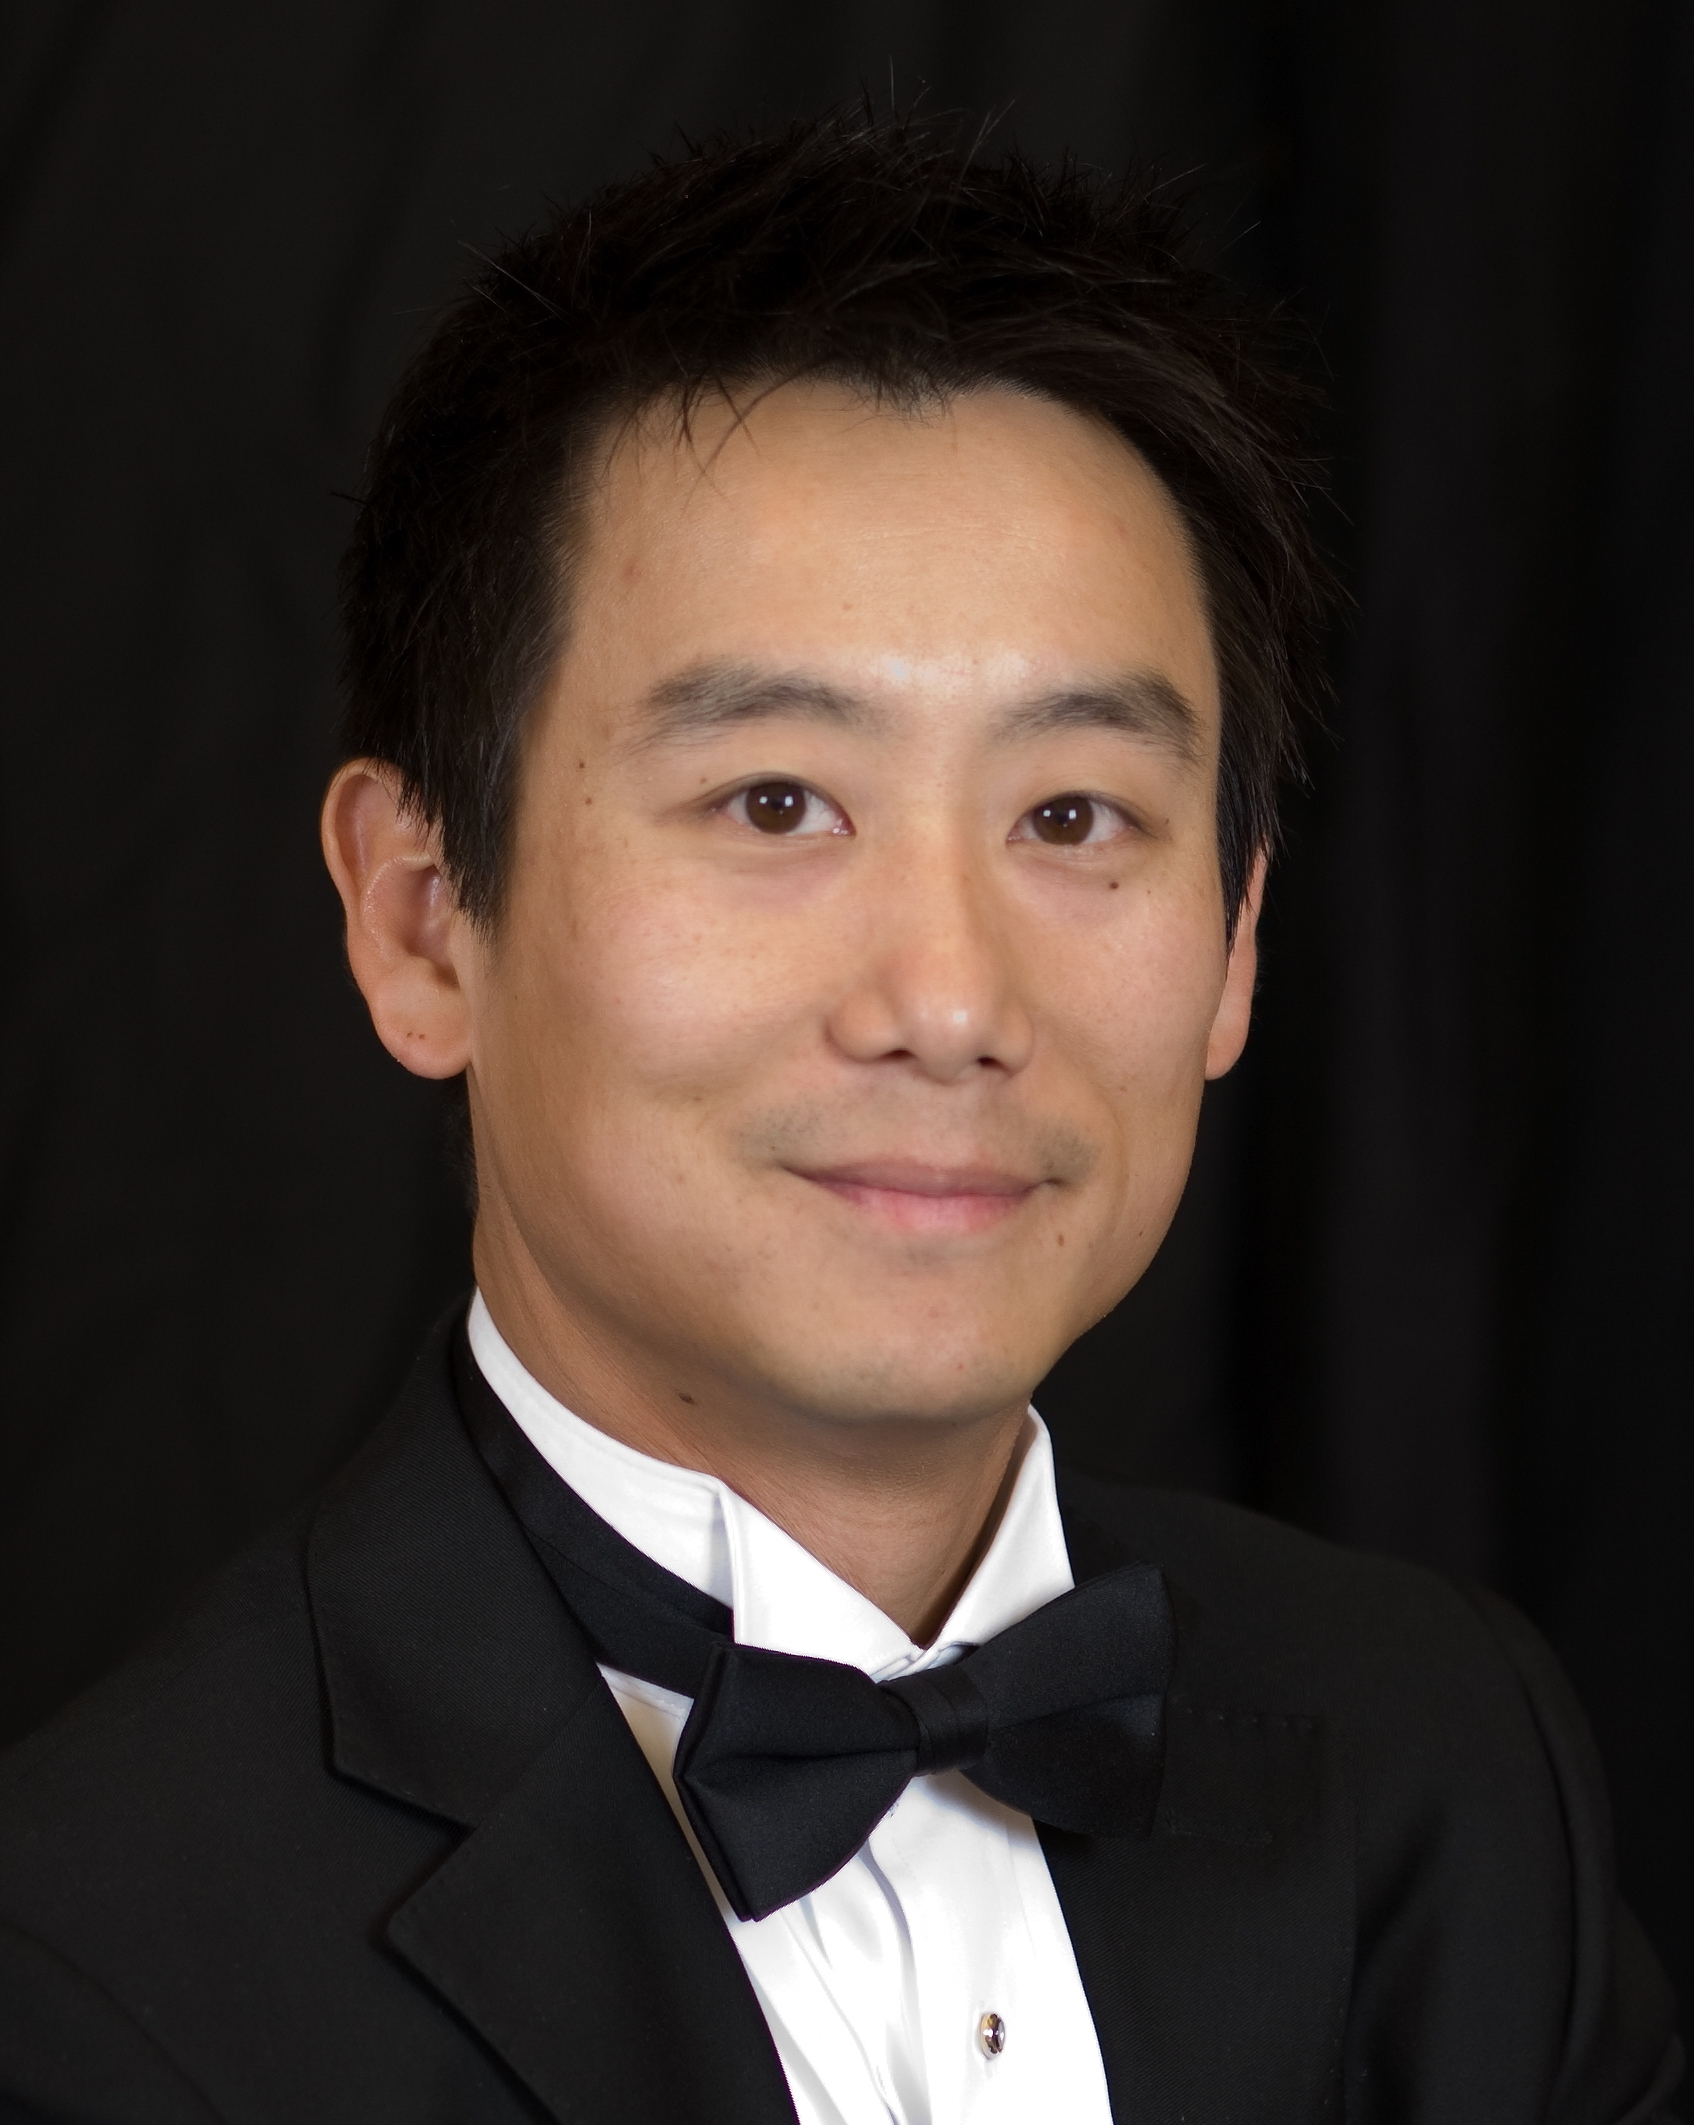 Mr. Yin-feng Keynes Chen - Director, Youth Symphony Orchestra